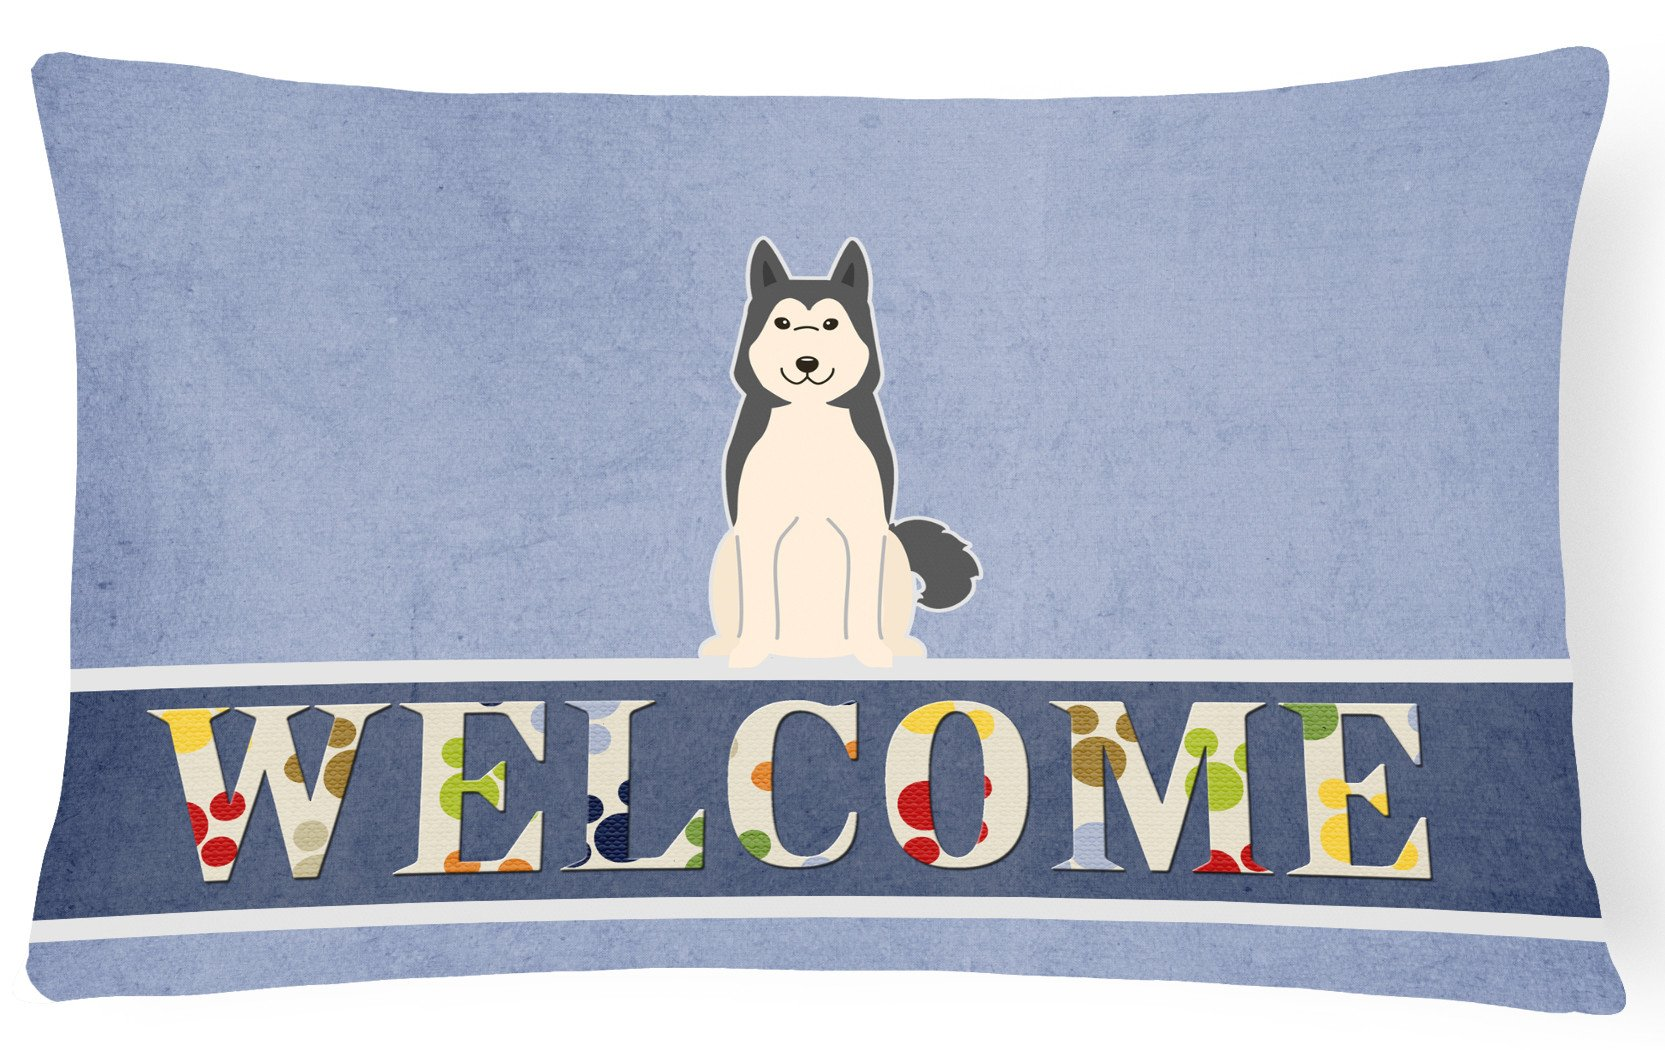 West Siberian Laika Spitz Welcome Canvas Fabric Decorative Pillow BB5606PW1216 by Caroline's Treasures